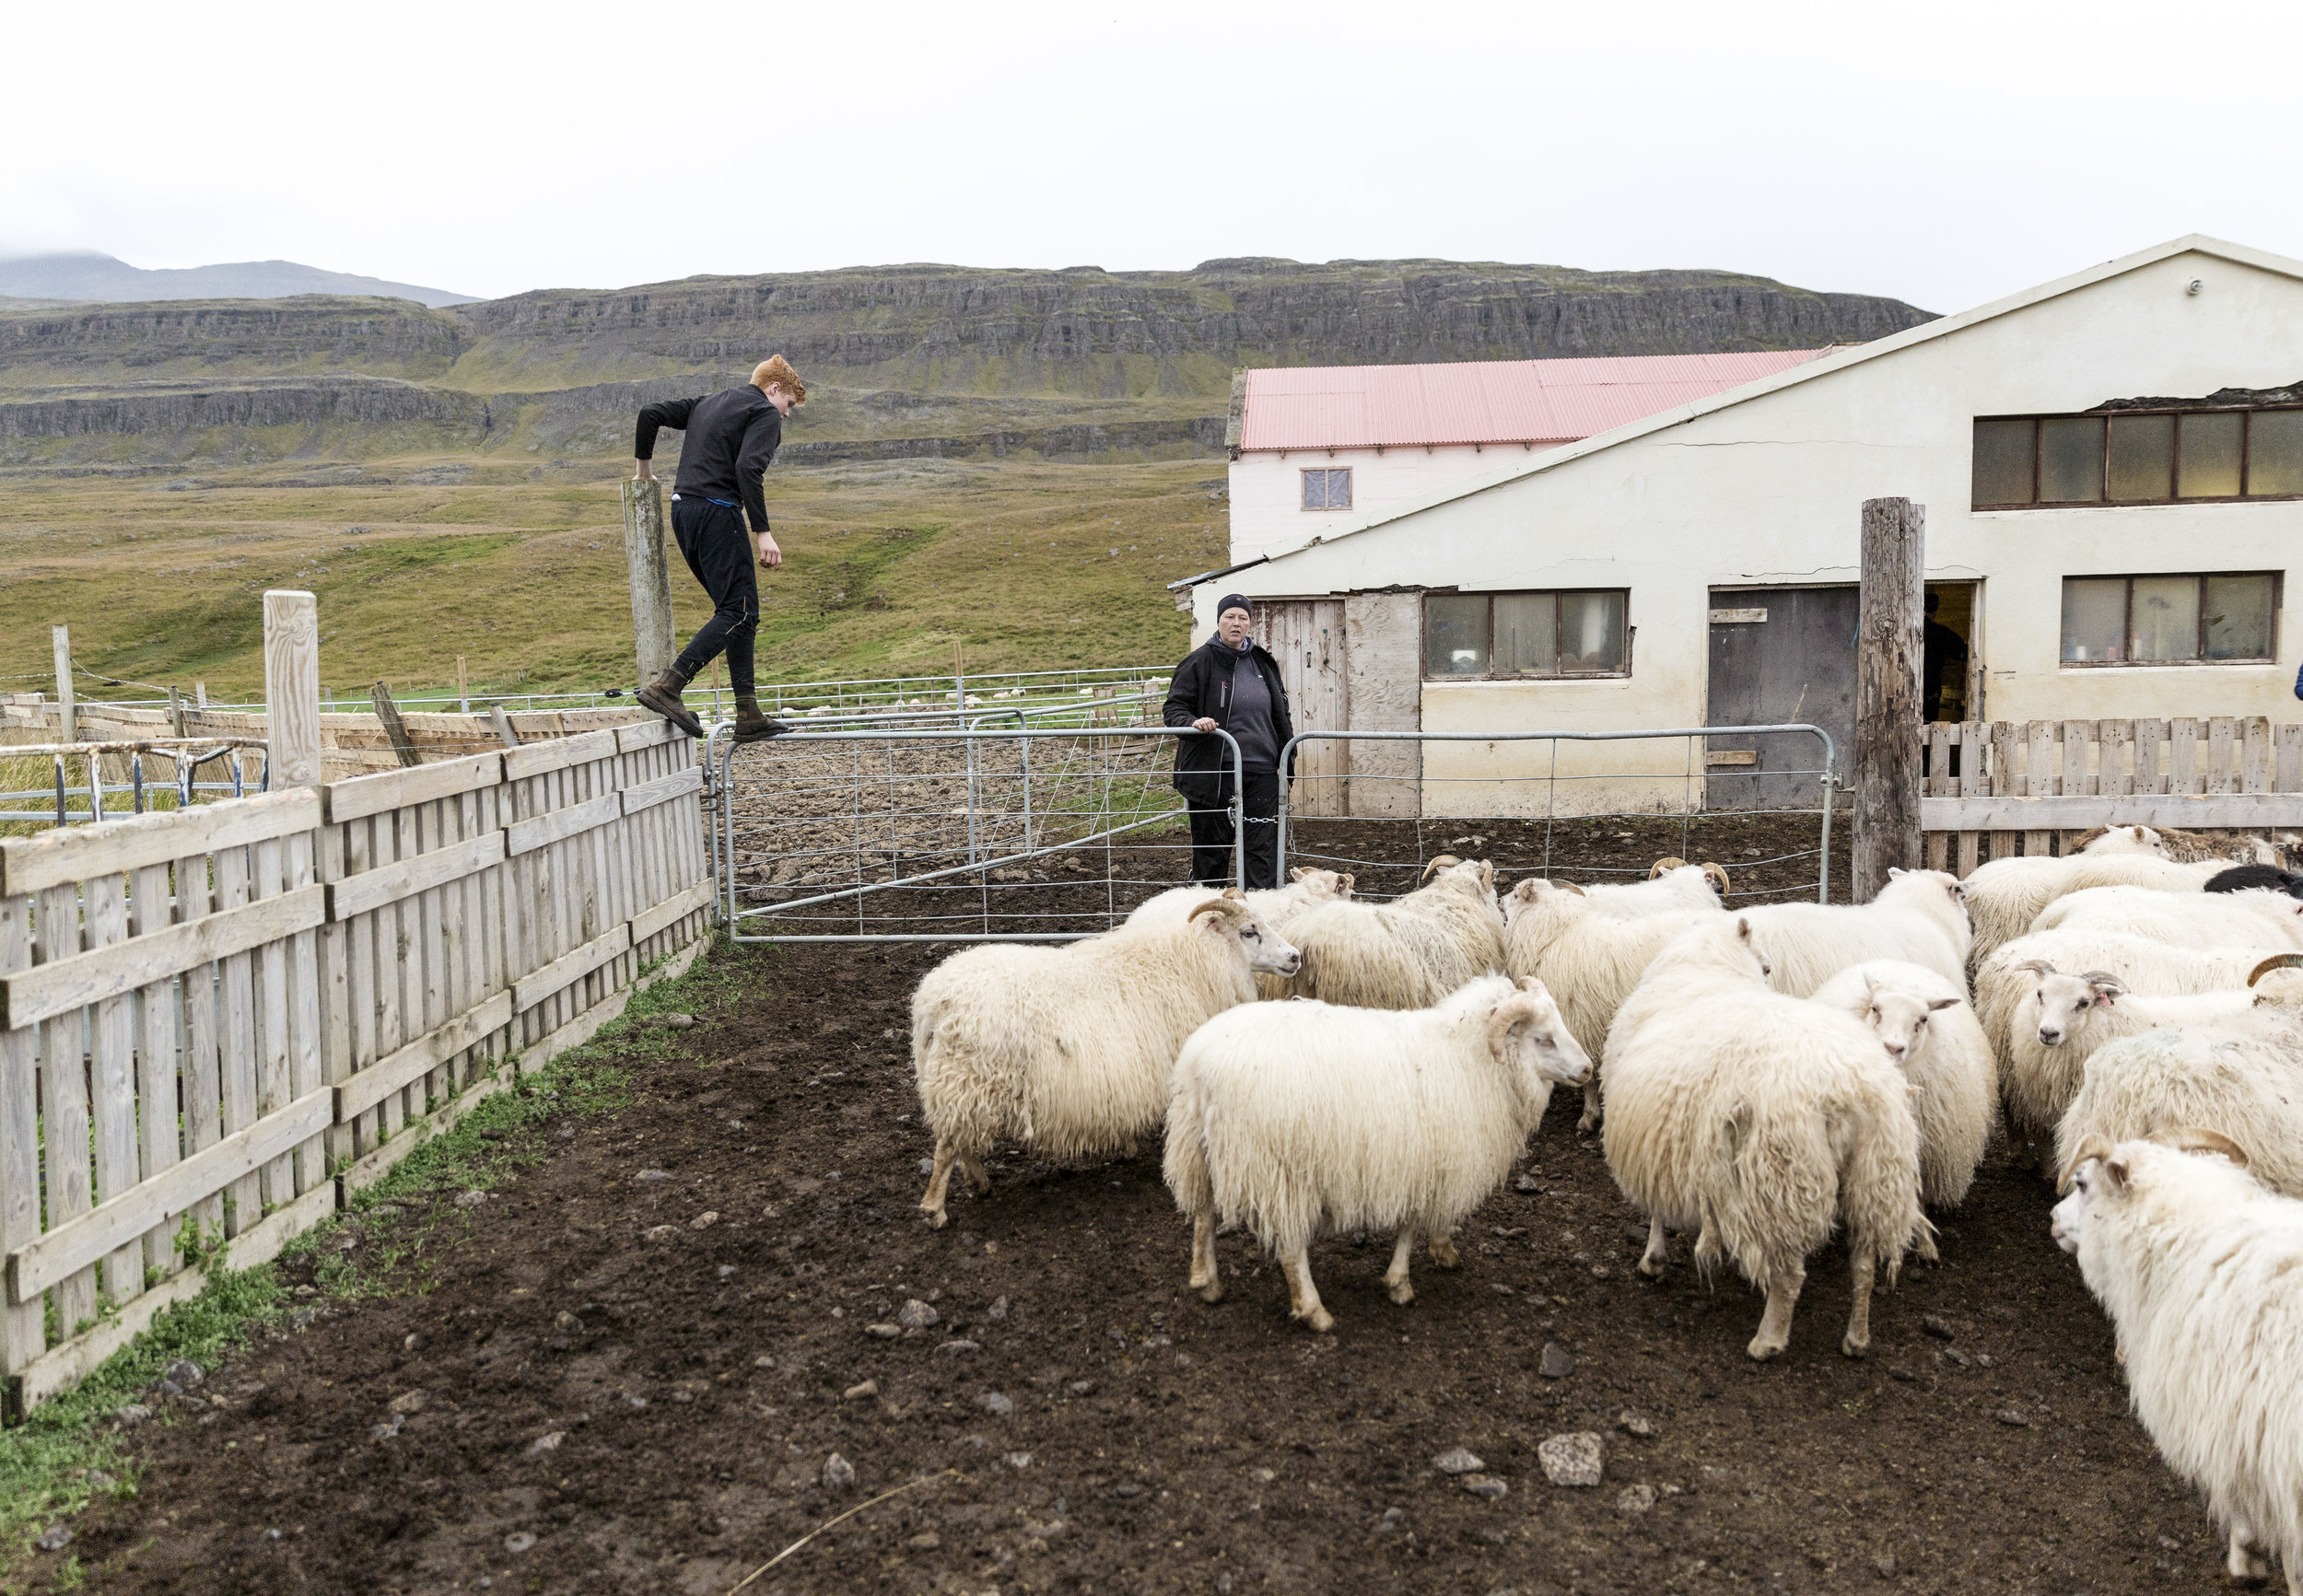 Iceland, Starrastaðir- September 11th 2017:  Mother and Son, Sara Reykdal and Úlfar Hörður Sveinsson, take inventory on the sheep that they rounded up for the winter at their farm, Starrastaðir. This is for a travel story on Iceland's sheep roundup.